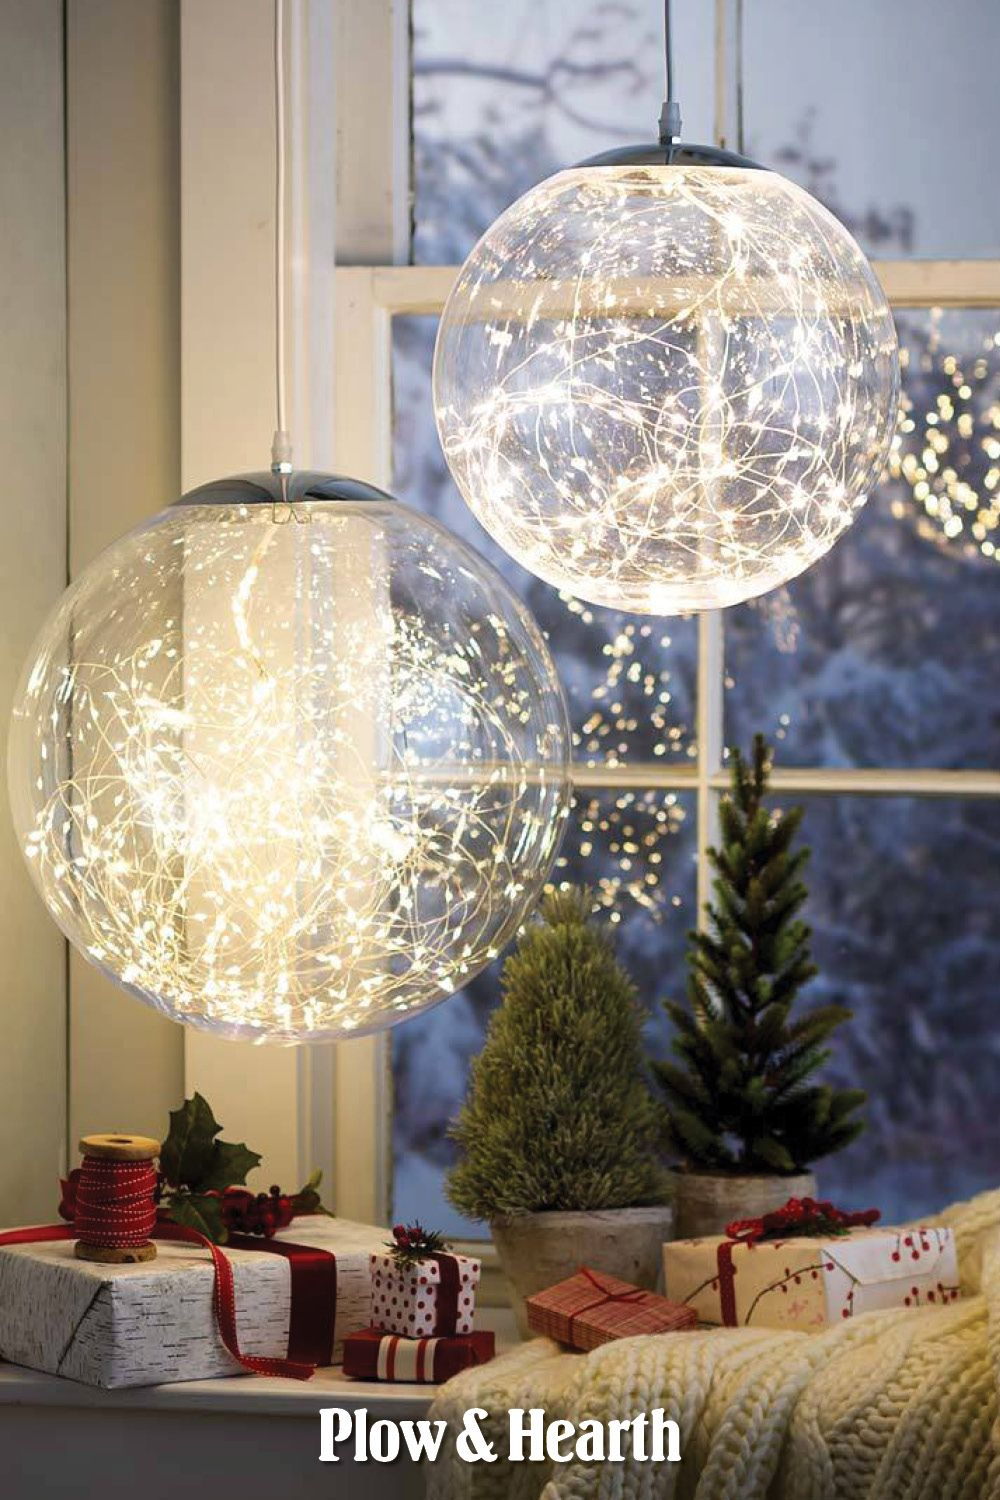 Pin By Dessie Creamer On Home Creative Ideas Indoor Holiday